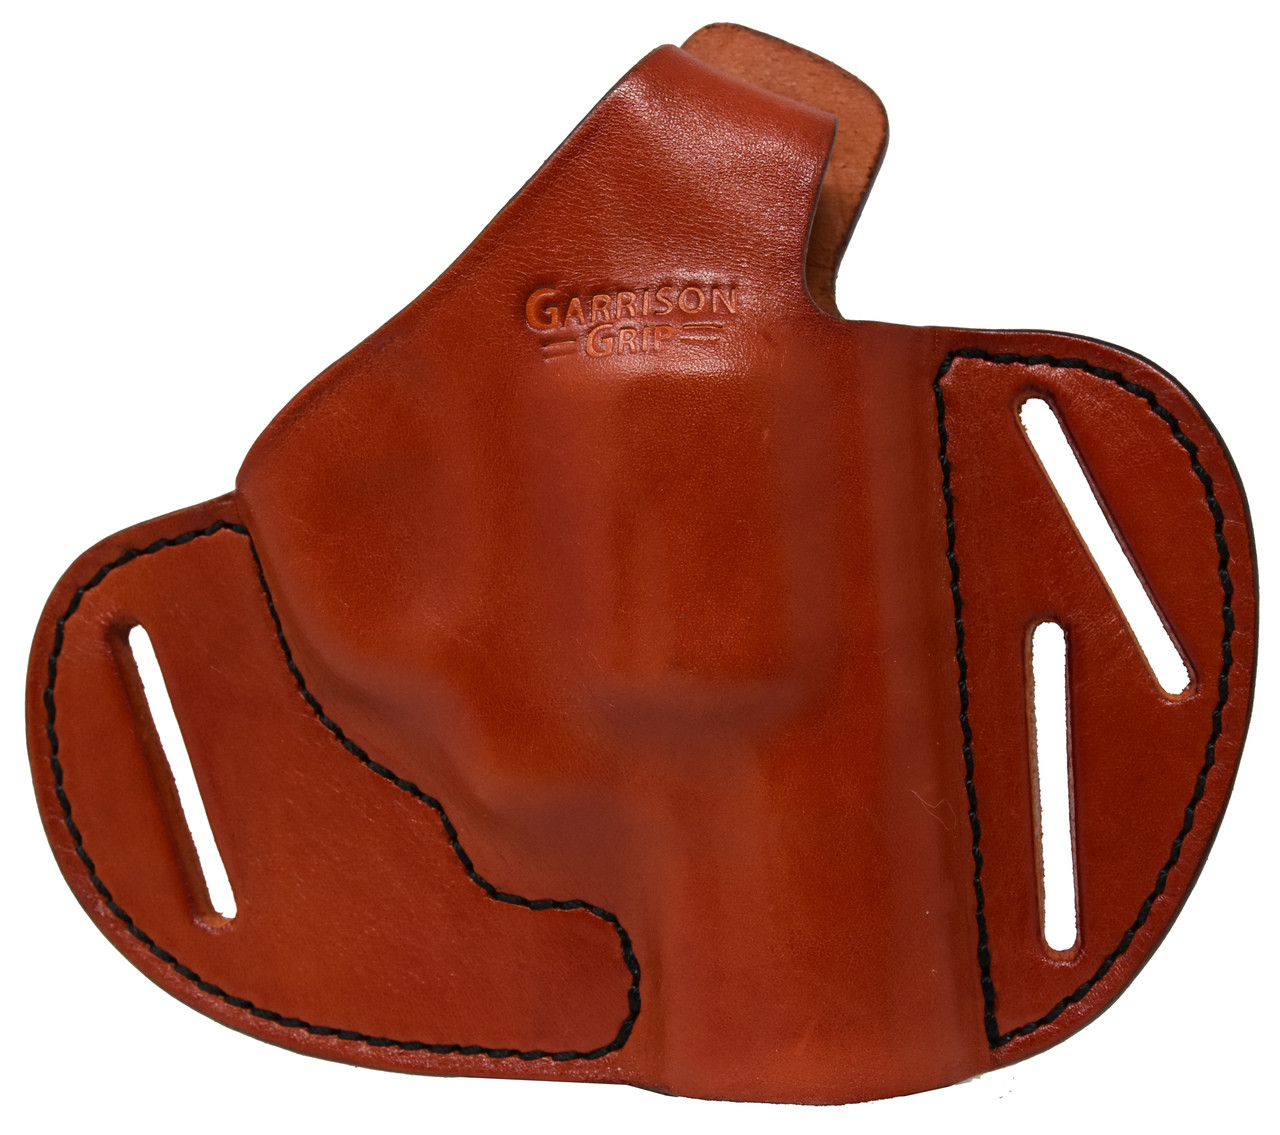 For Smith and Wesson 38 Special 357 Magnum 22 LR 22 Magnum Revolver, Premium Full Grain Tan Italian Leather 2 Position Tactical Holster